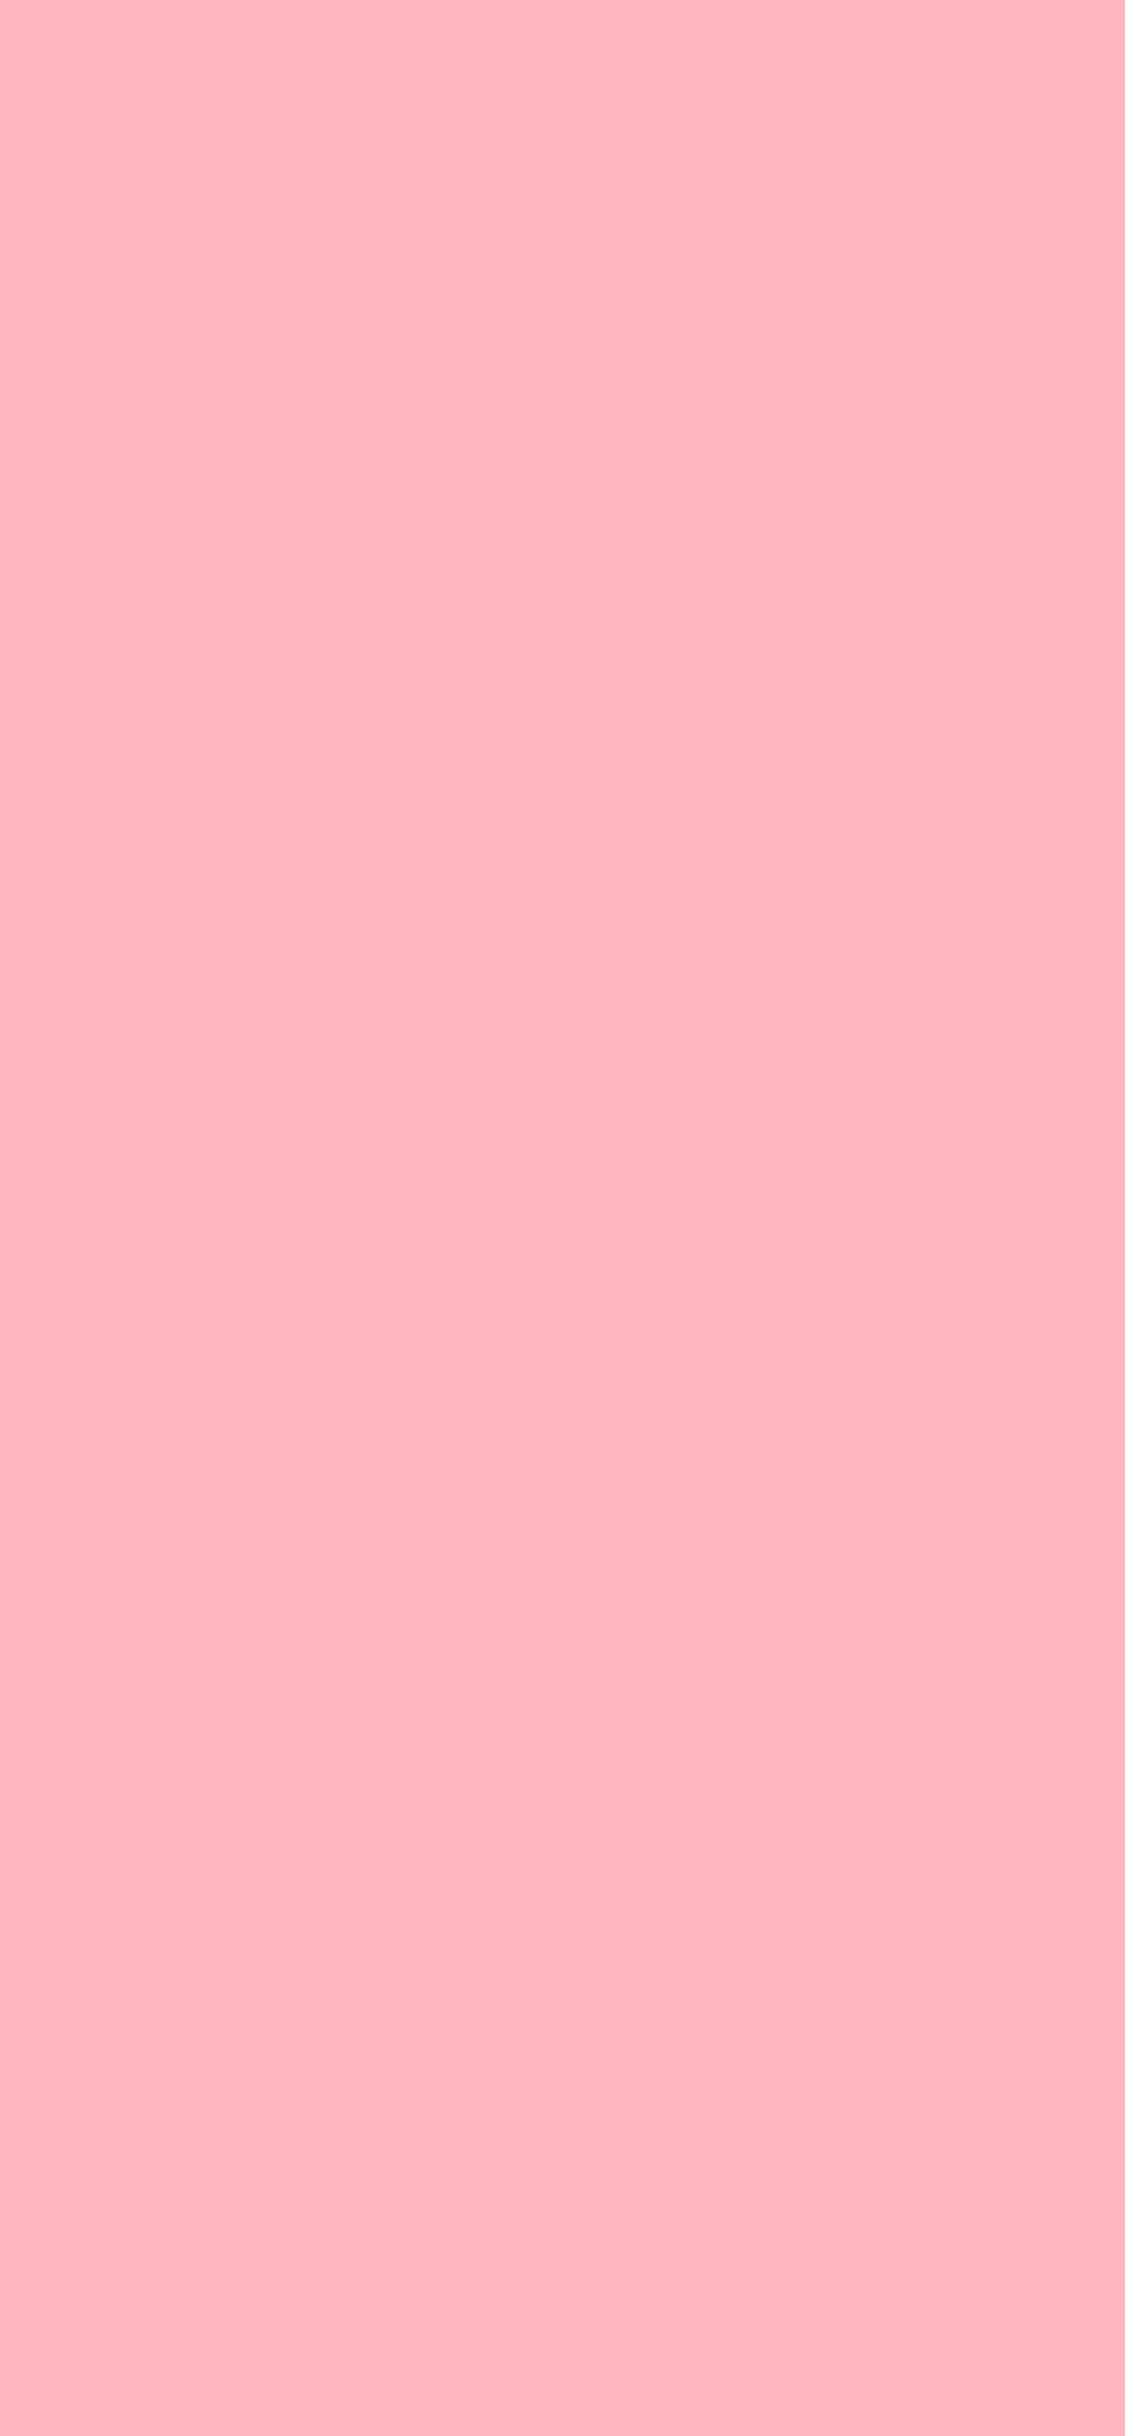 1125x2436 Light Pink Solid Color Background